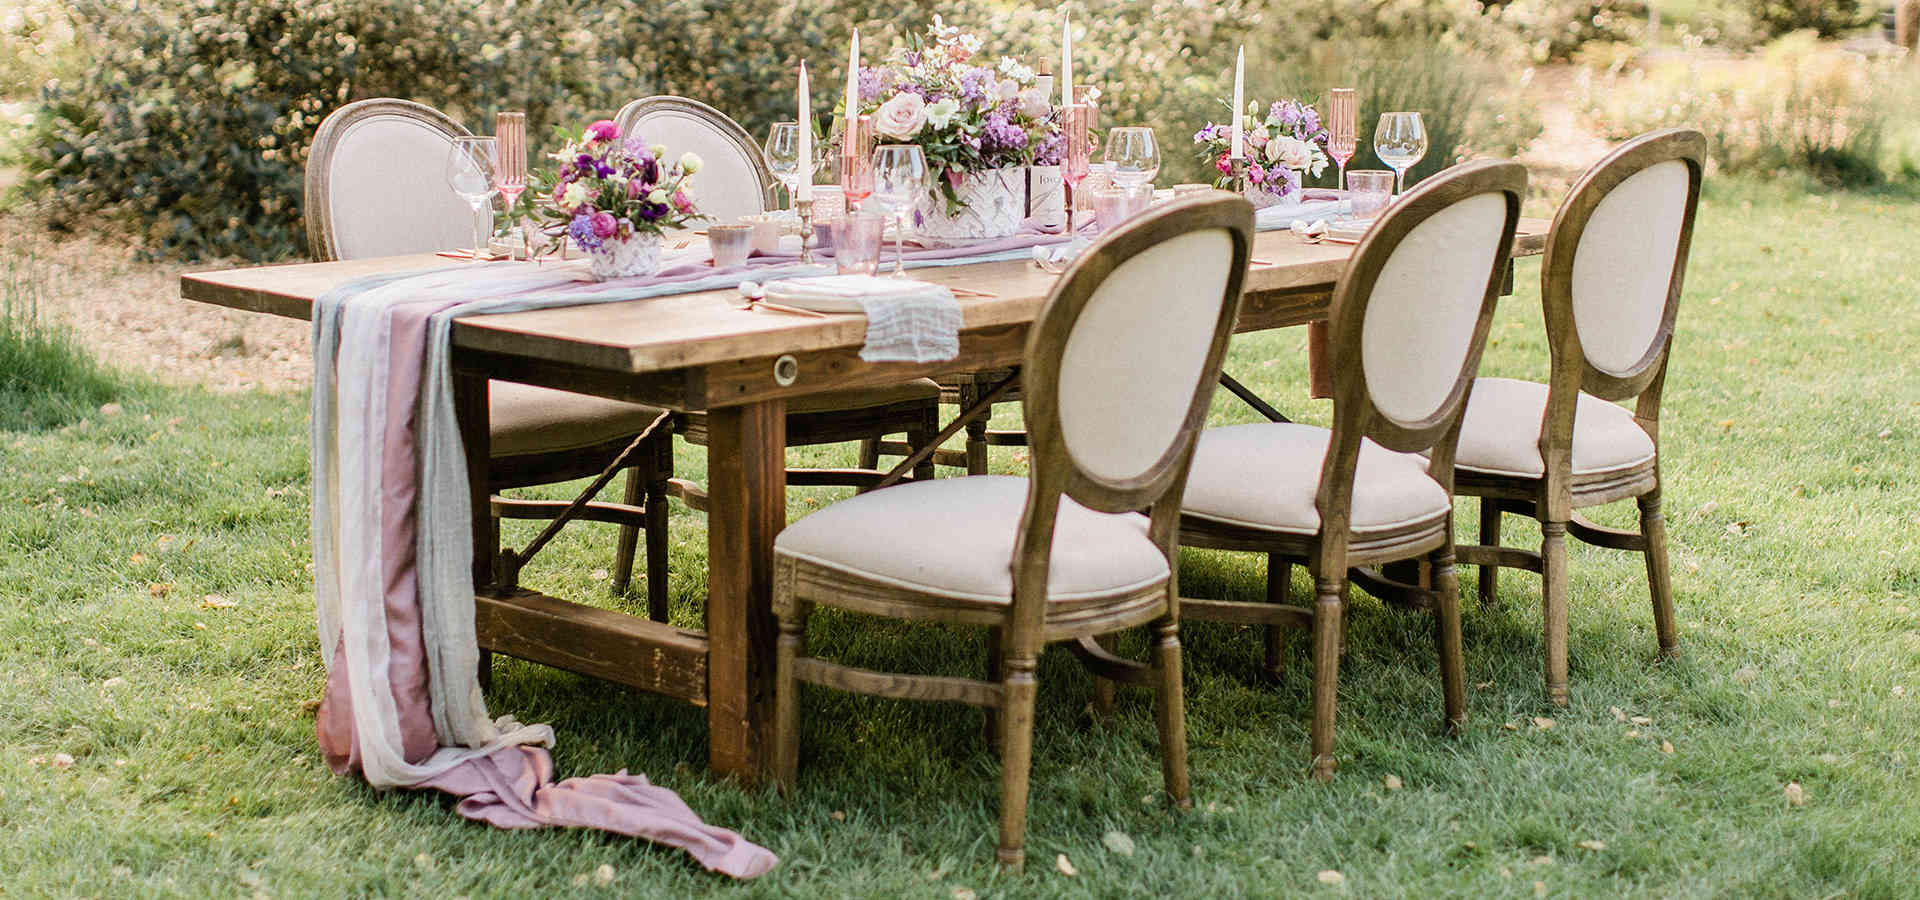 Rental Chairs And Tables Event Rentals In Monterey And Salinas Party Rentals Monterey